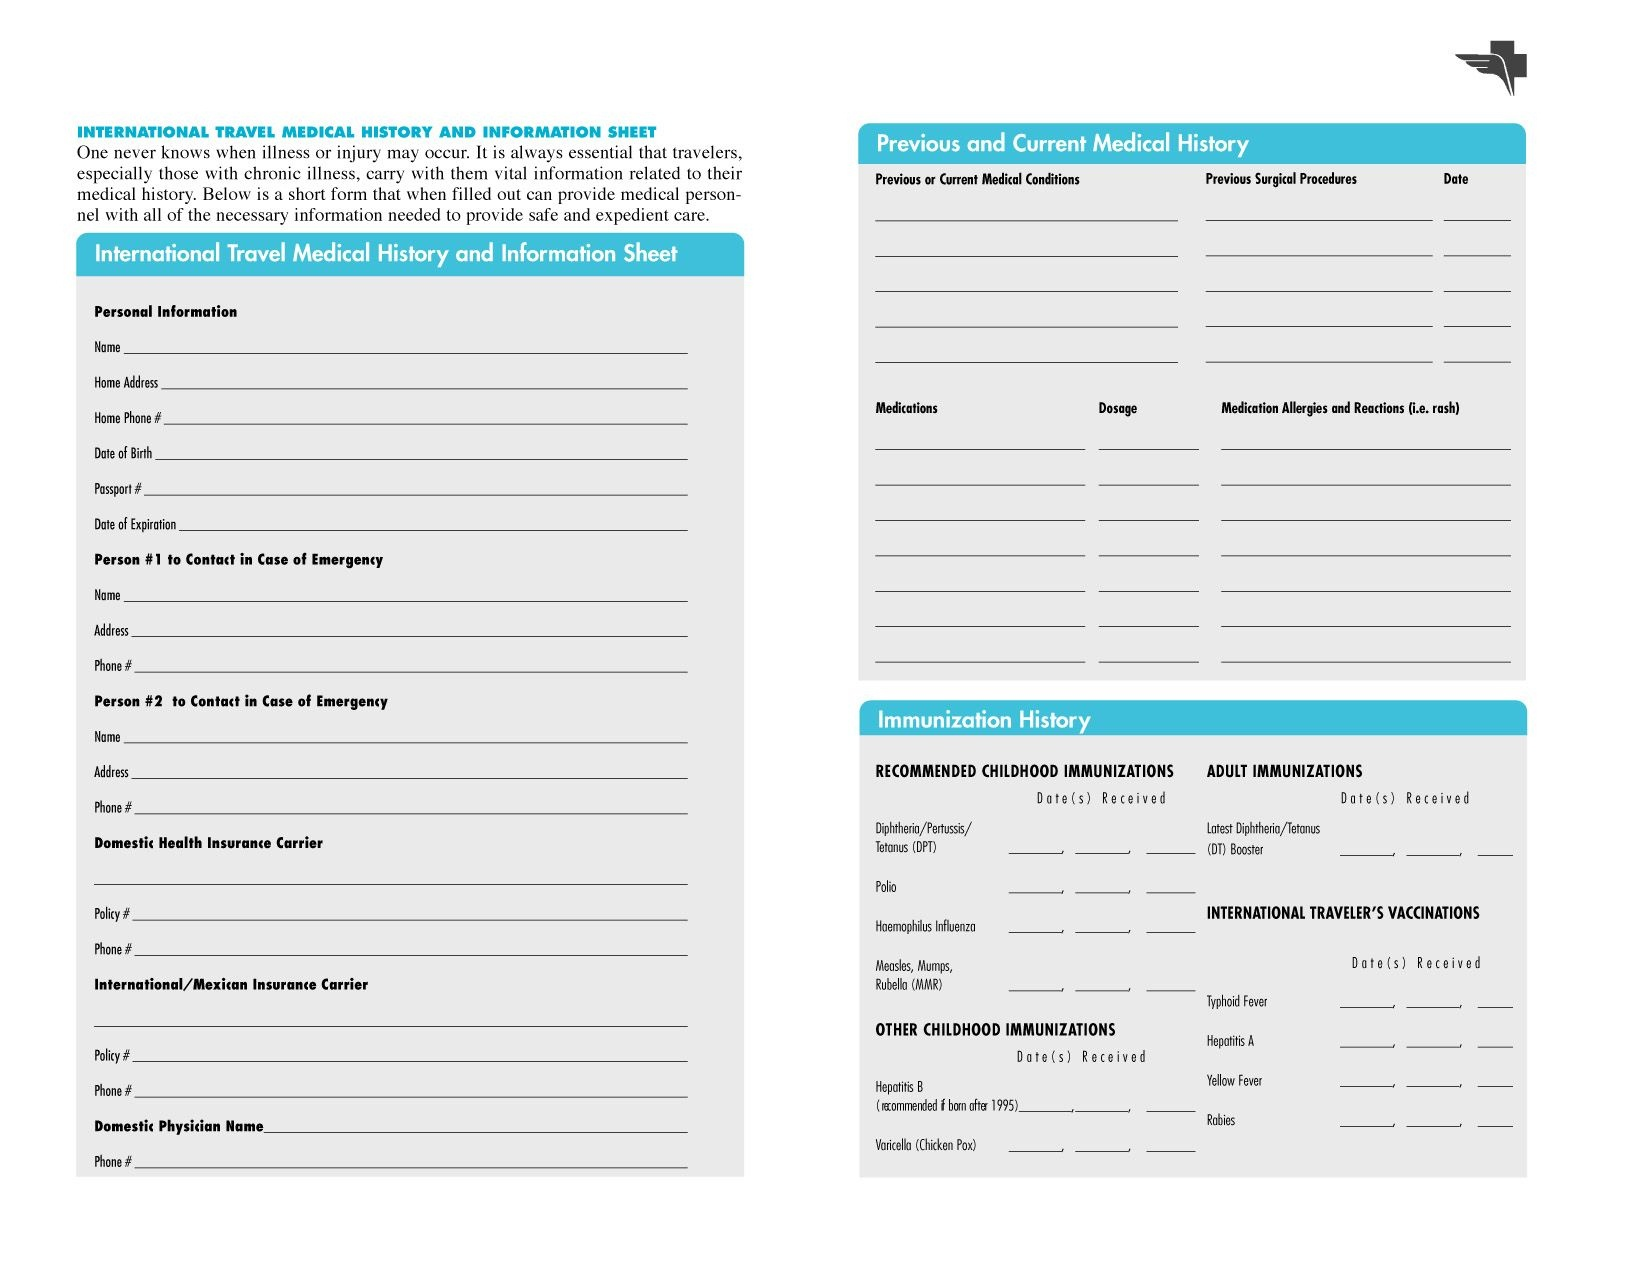 Free Printables | Free Printable Family Medical History Forms - Free Printable Personal Medical History Forms